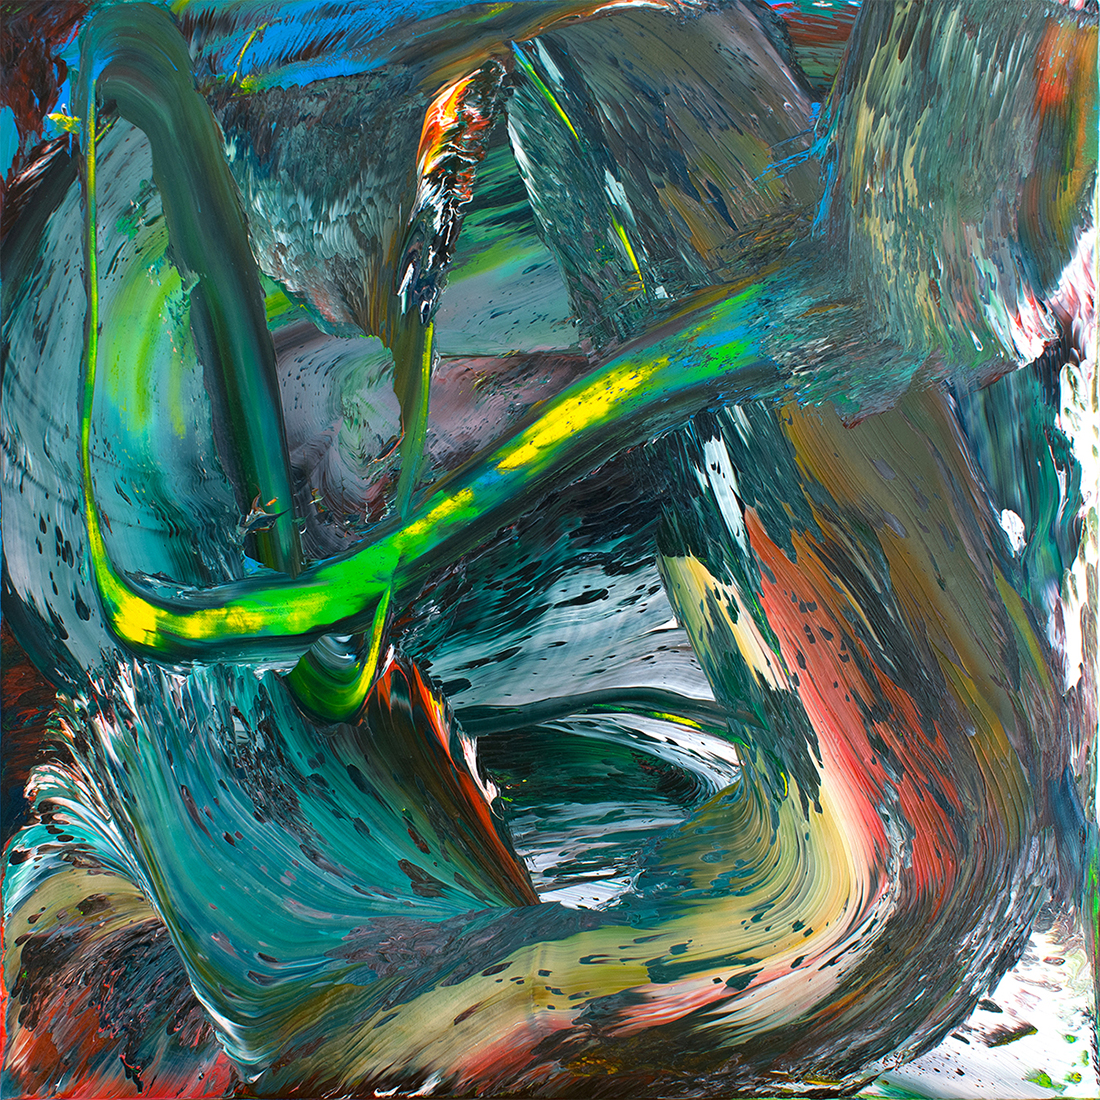 Where To Buy Abstract Art Uk